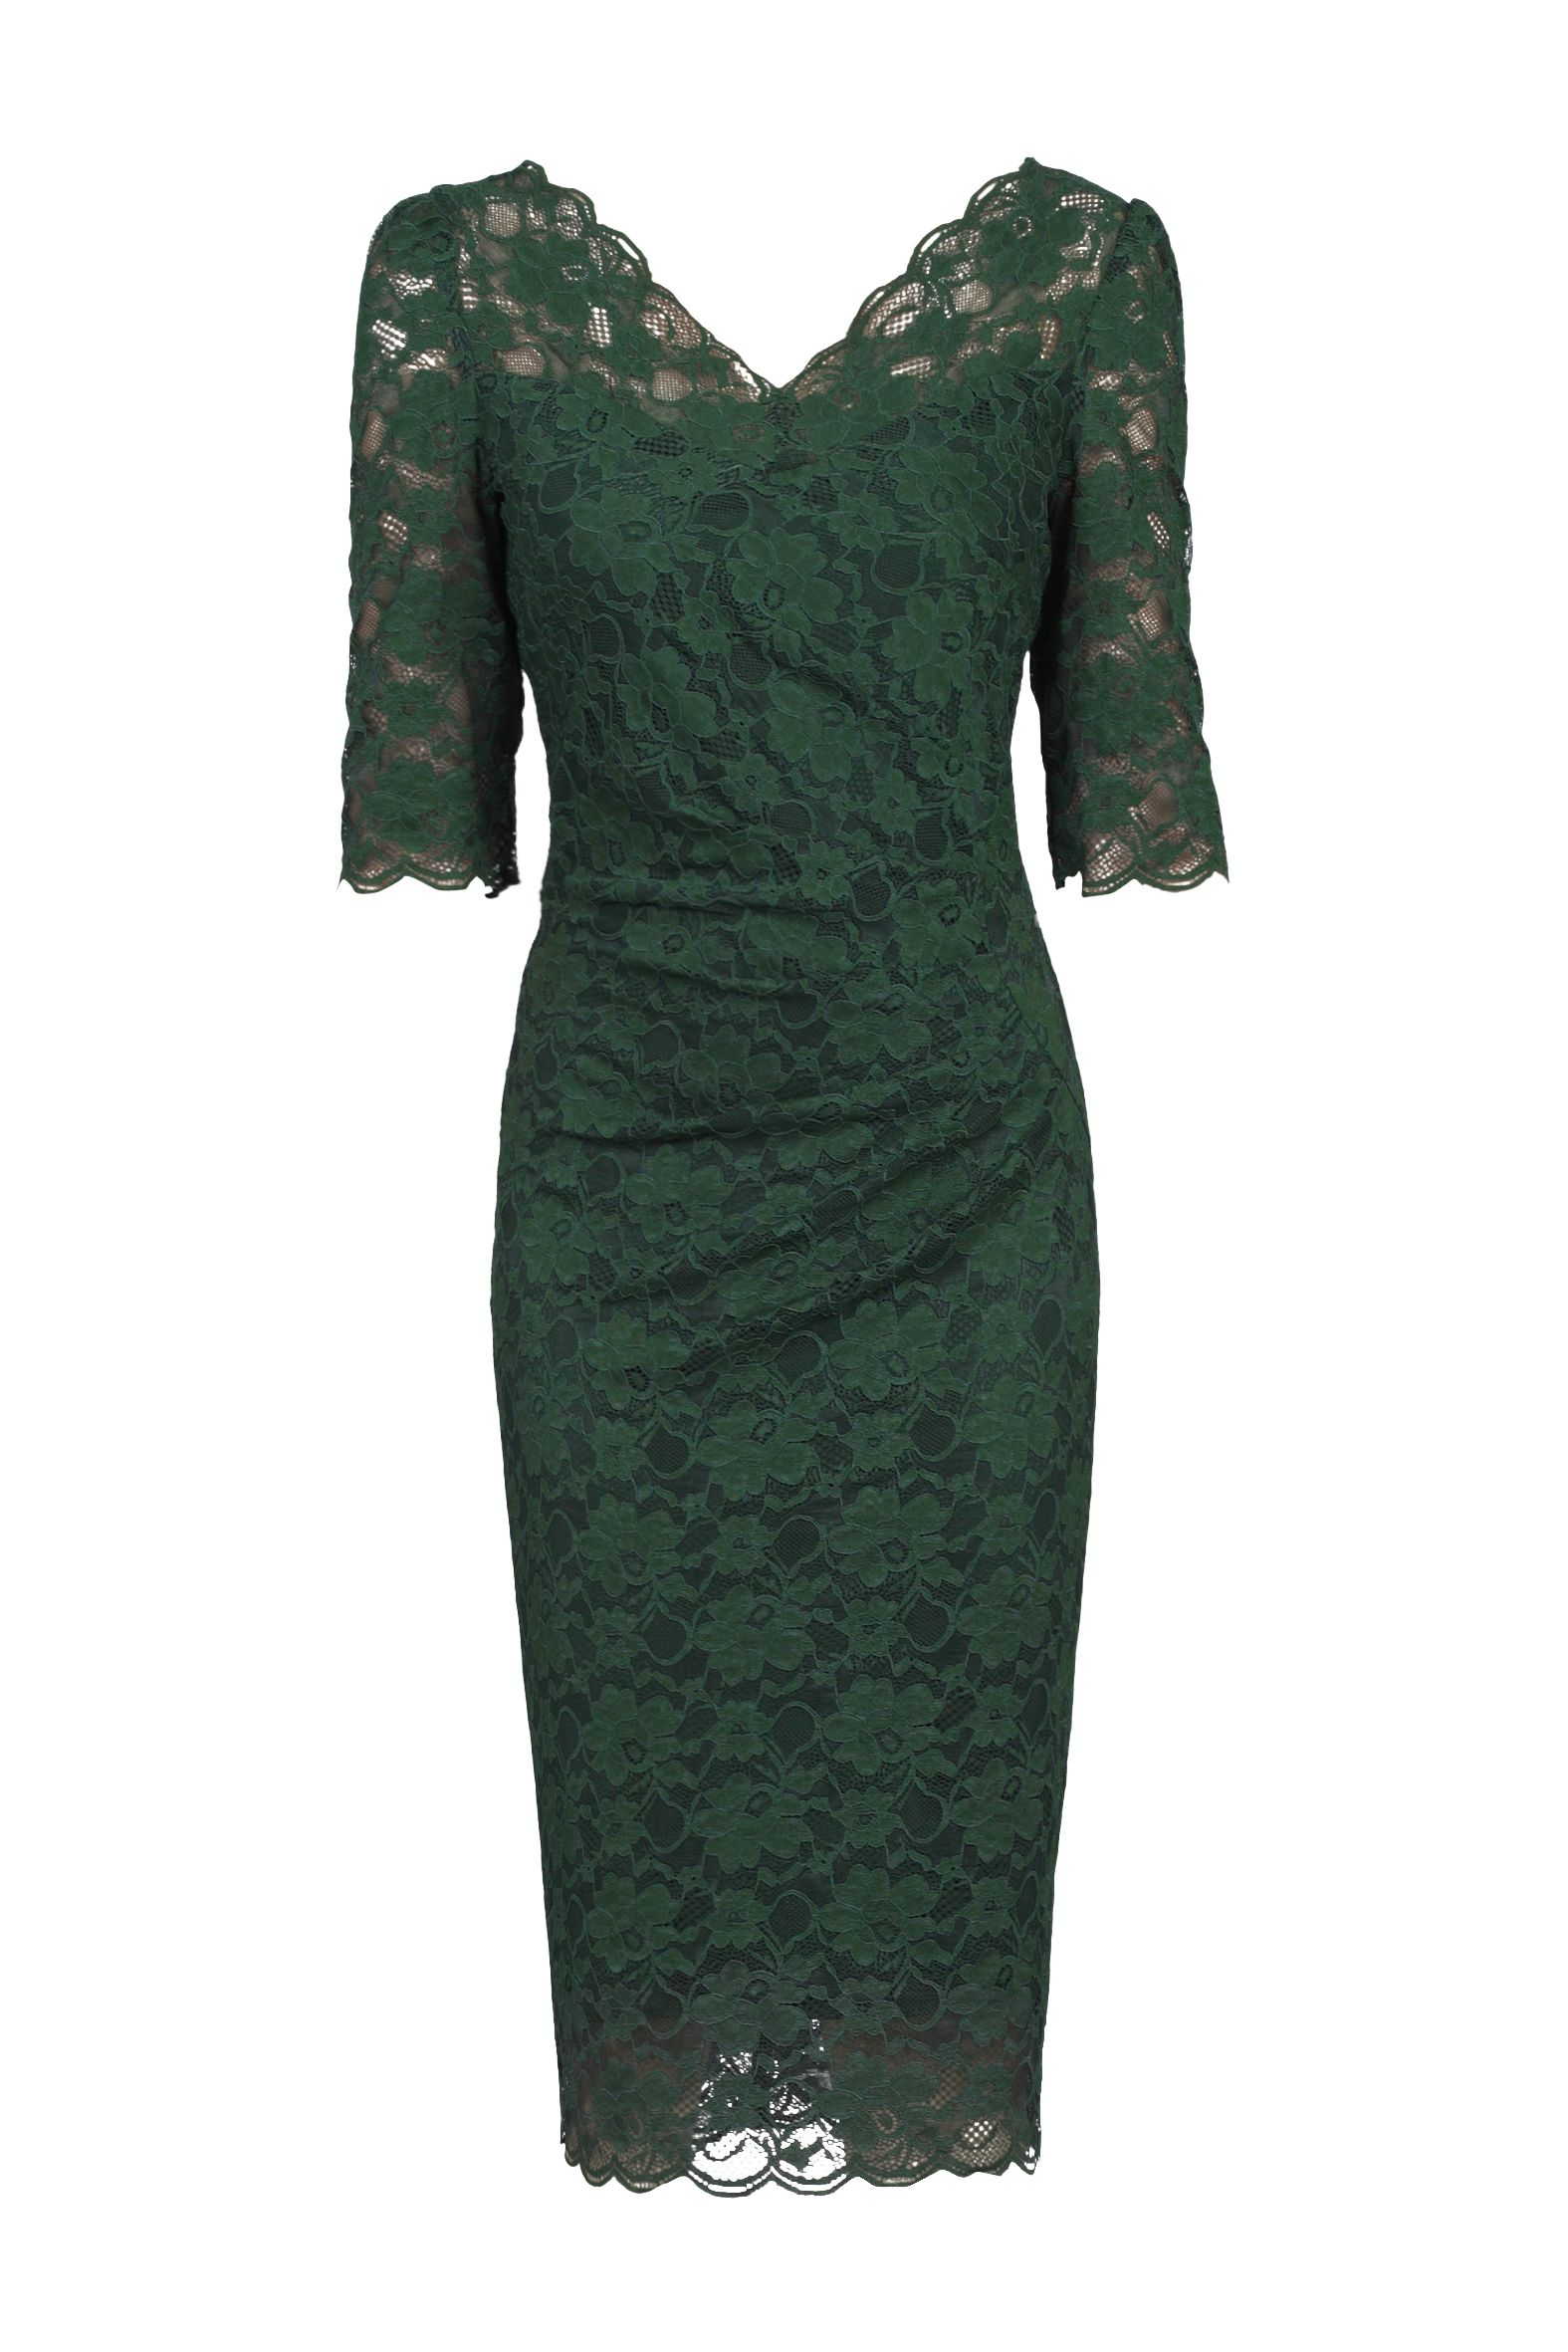 Jolie Moi 3/4 Sleeve Scalloped Lace Dress, Dark Green